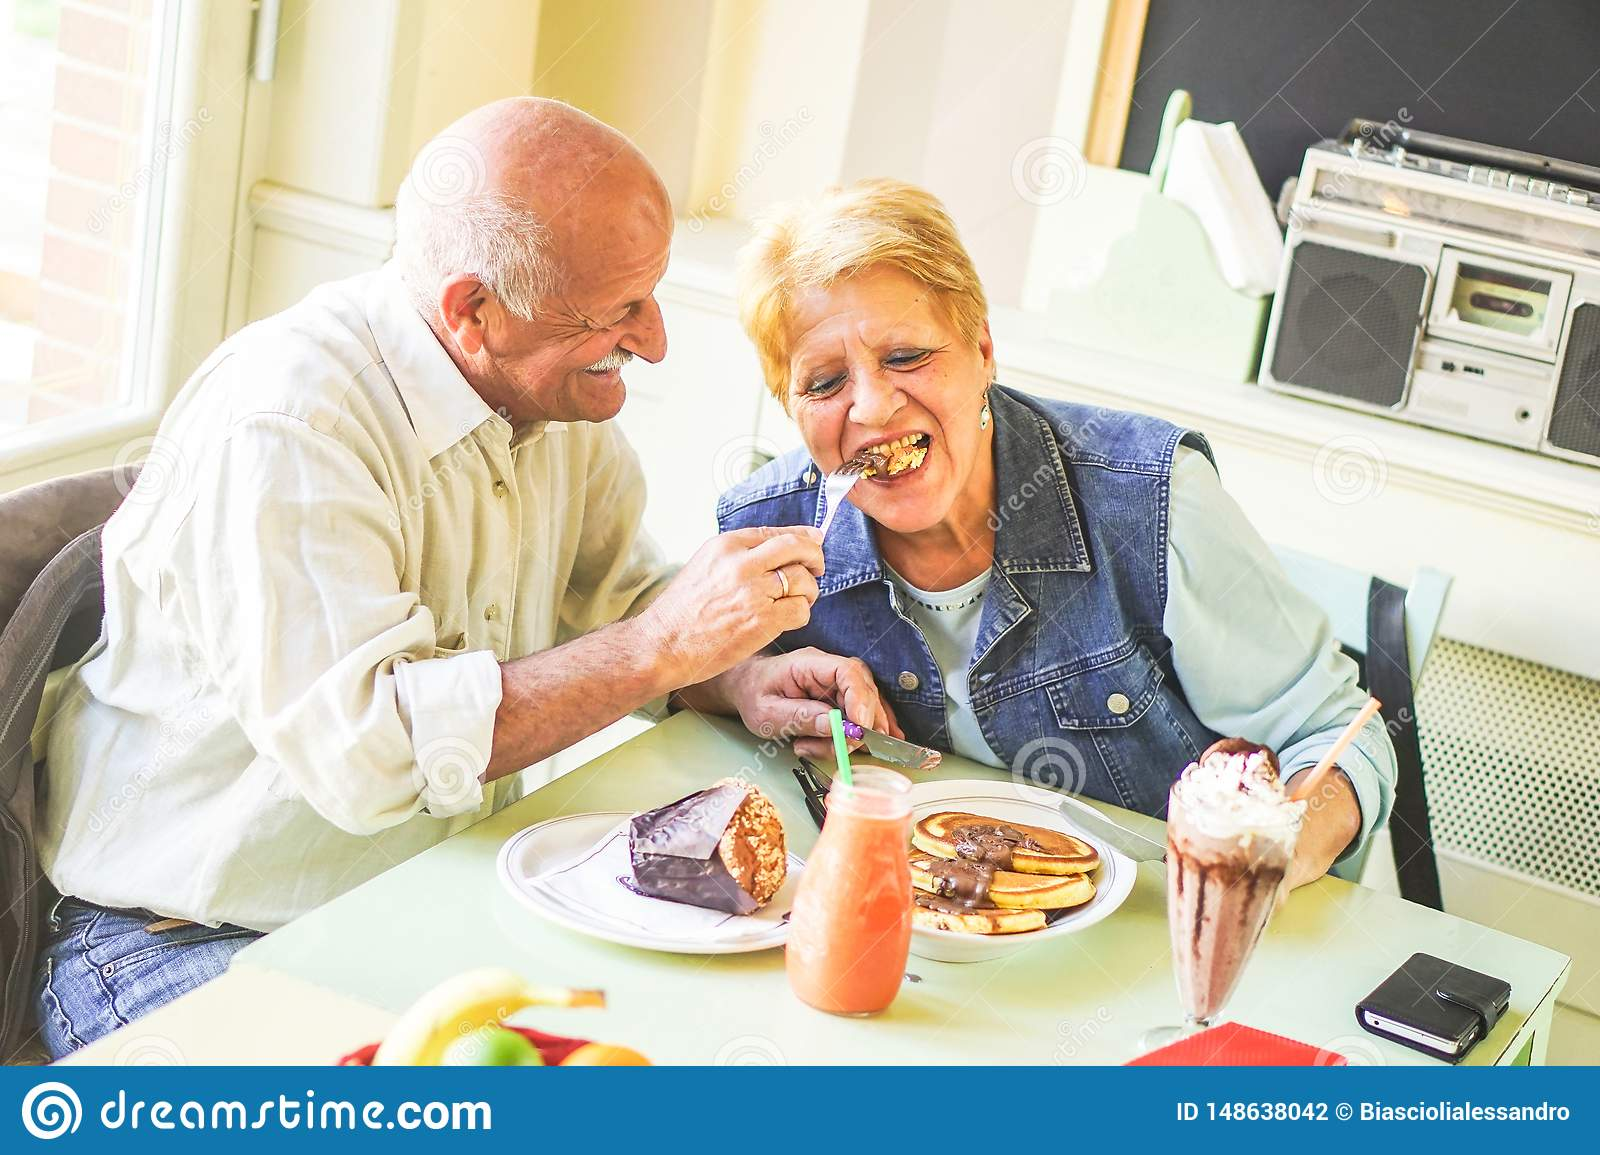 Happy seniors couple eating pancakes in a bar restaurant - Retired people having fun enjoying lunch together